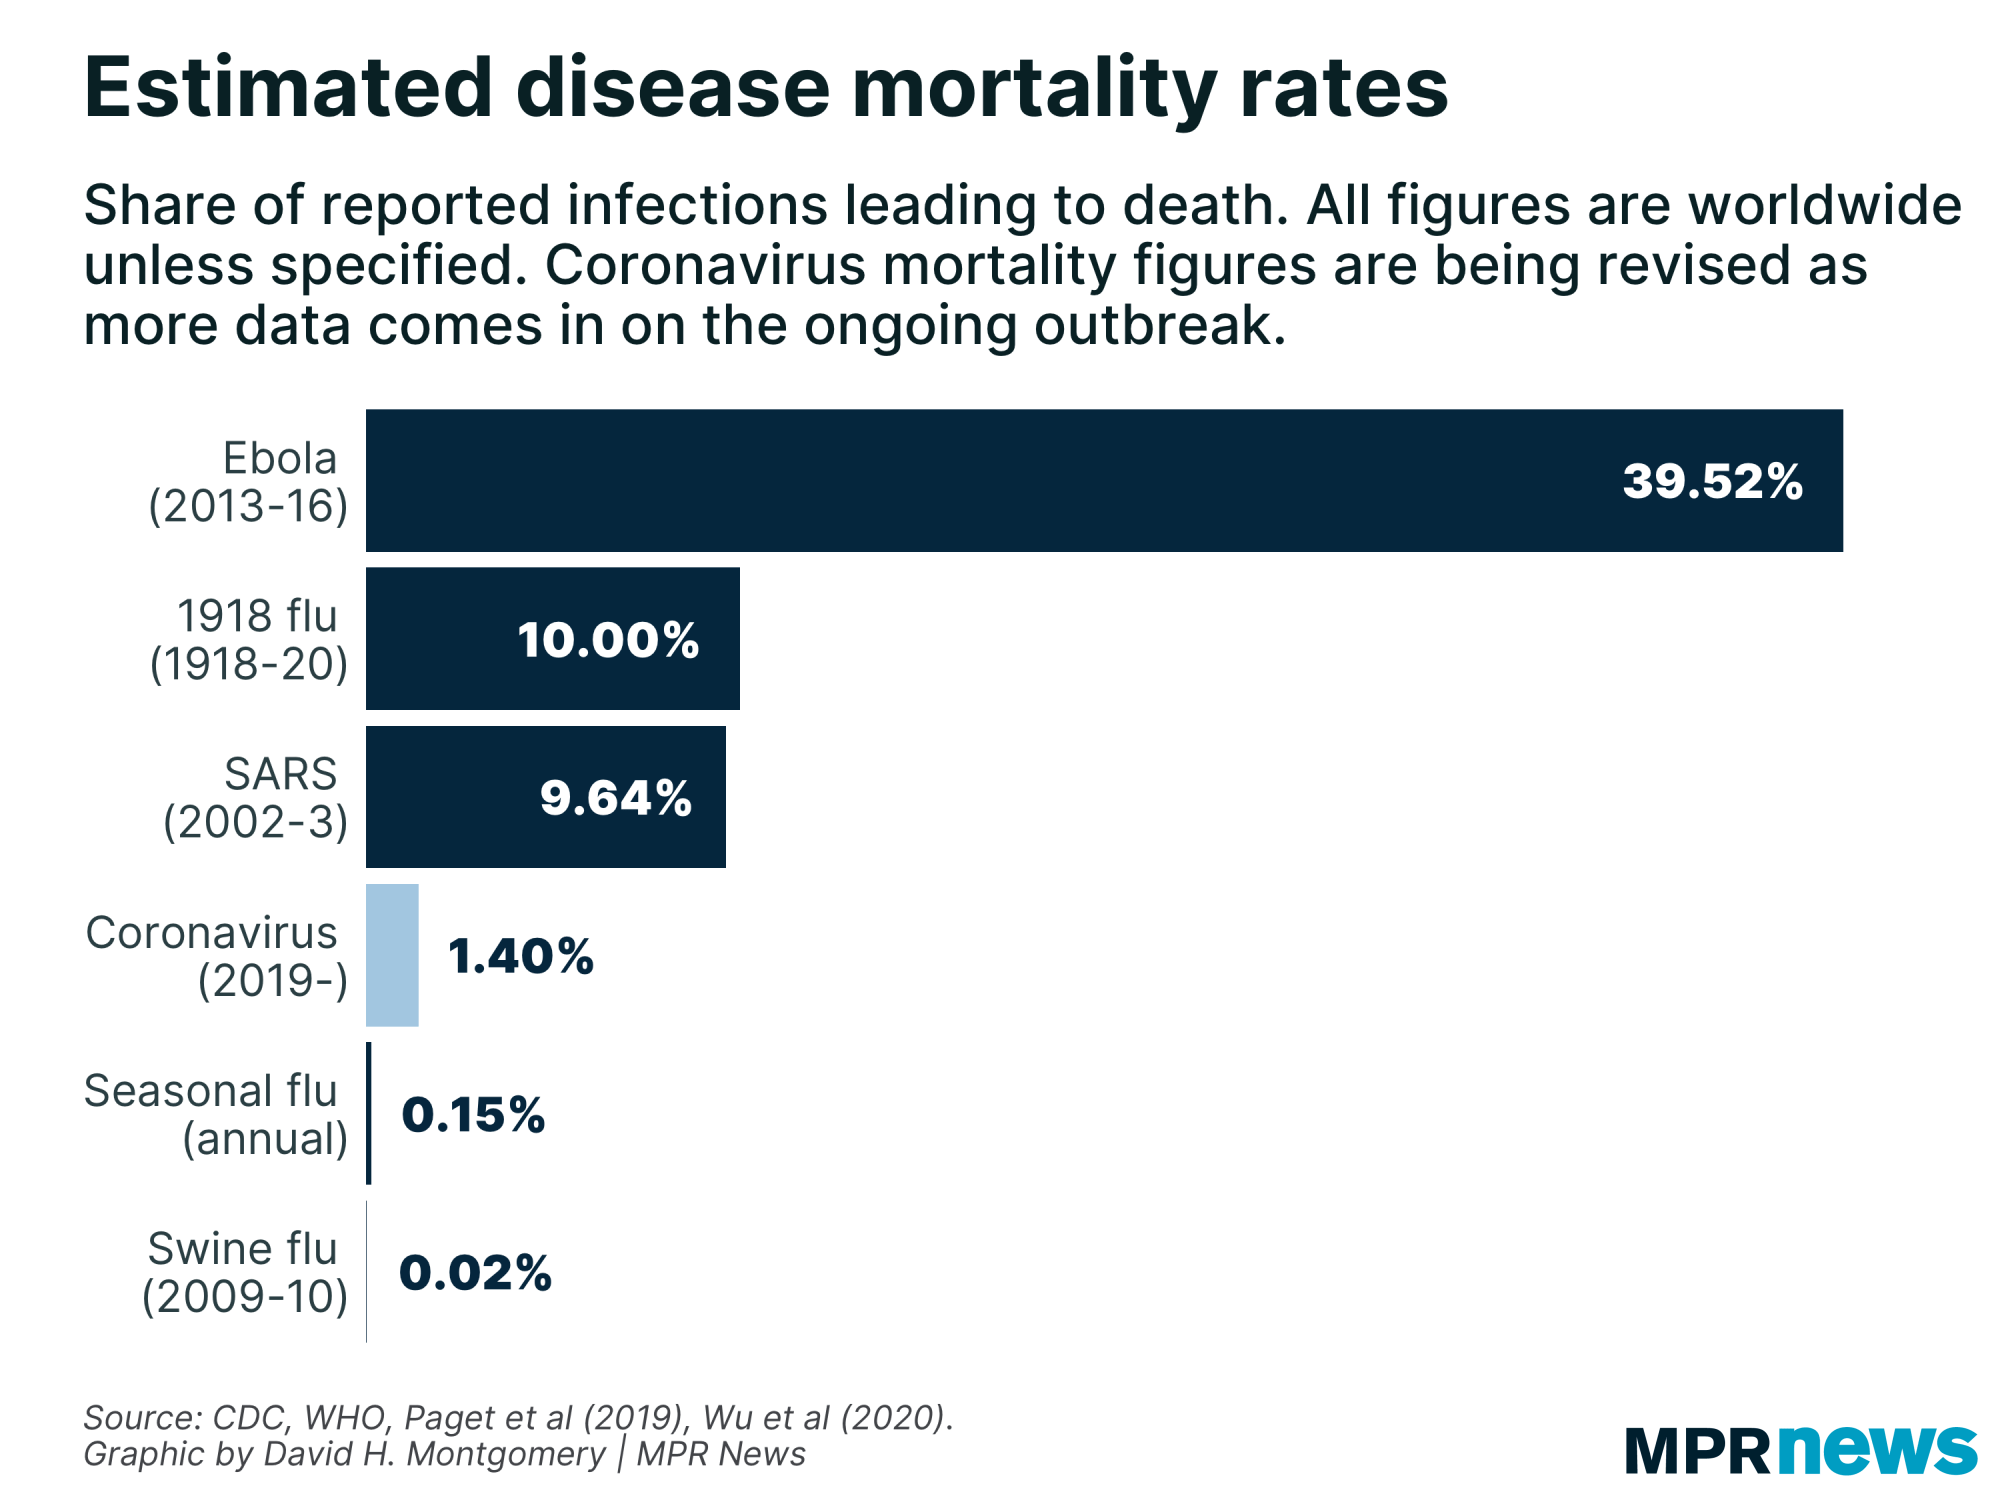 Estimated disease mortality rates